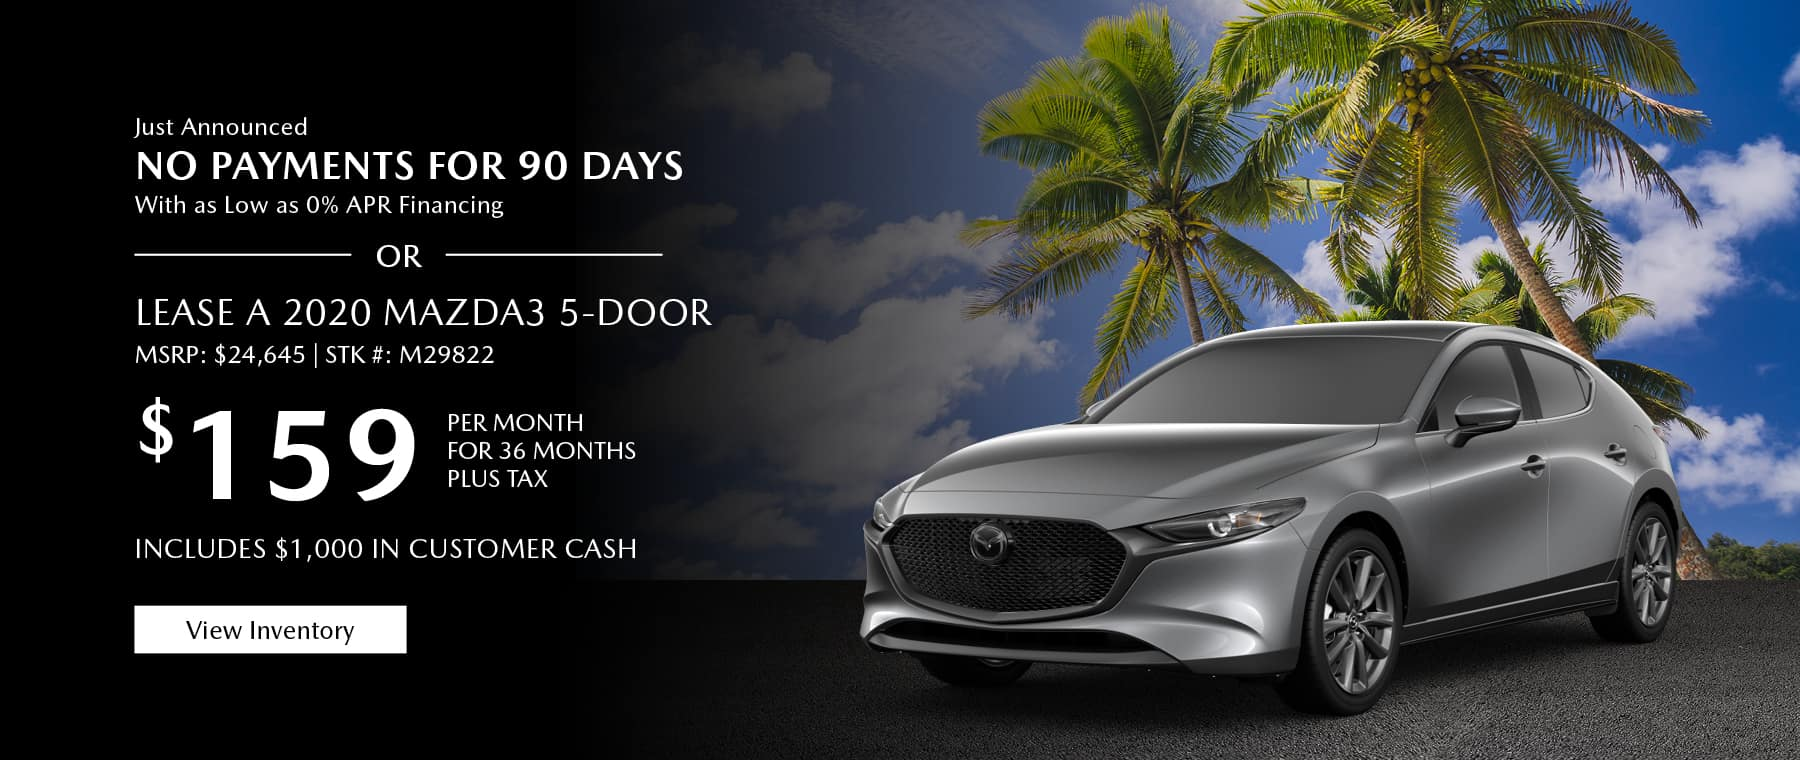 Just Announced, No payments for 90 days with as low as %0 APR financing, or lease the 2020 Mazda3 hatchback for $159 per month, plus tax. Includes $1,000 in customer cash. View inventory.